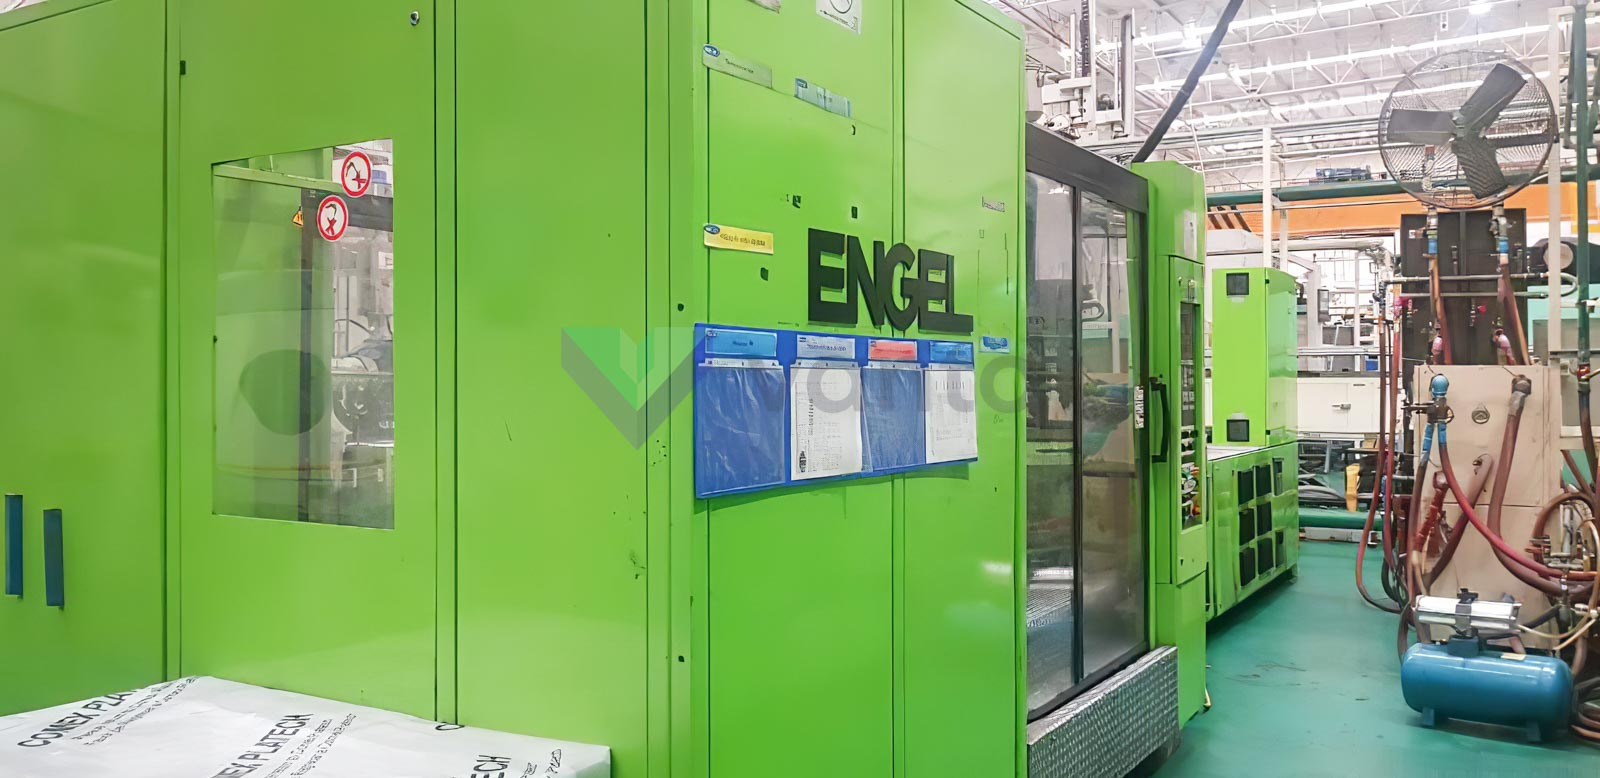 ENGEL DUO 2550 / 900 900t injection molding machine (2005) id10367